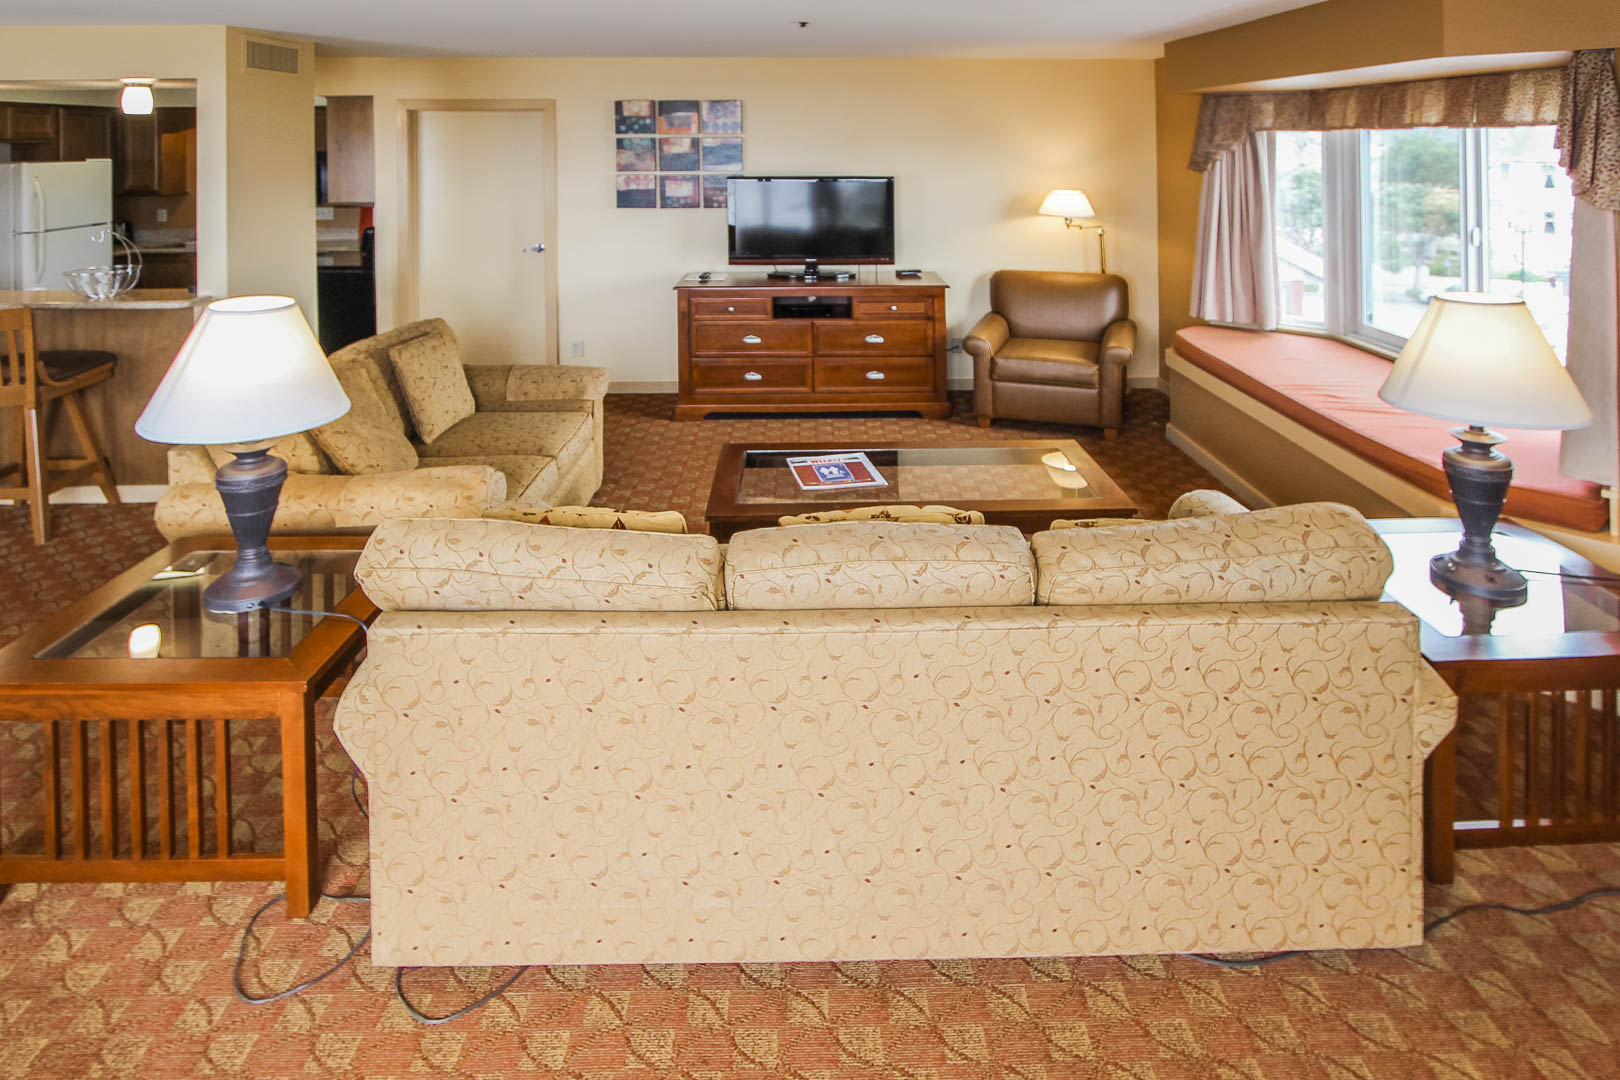 A spacious living room area at VRI's Pacific Grove Plaza in California.